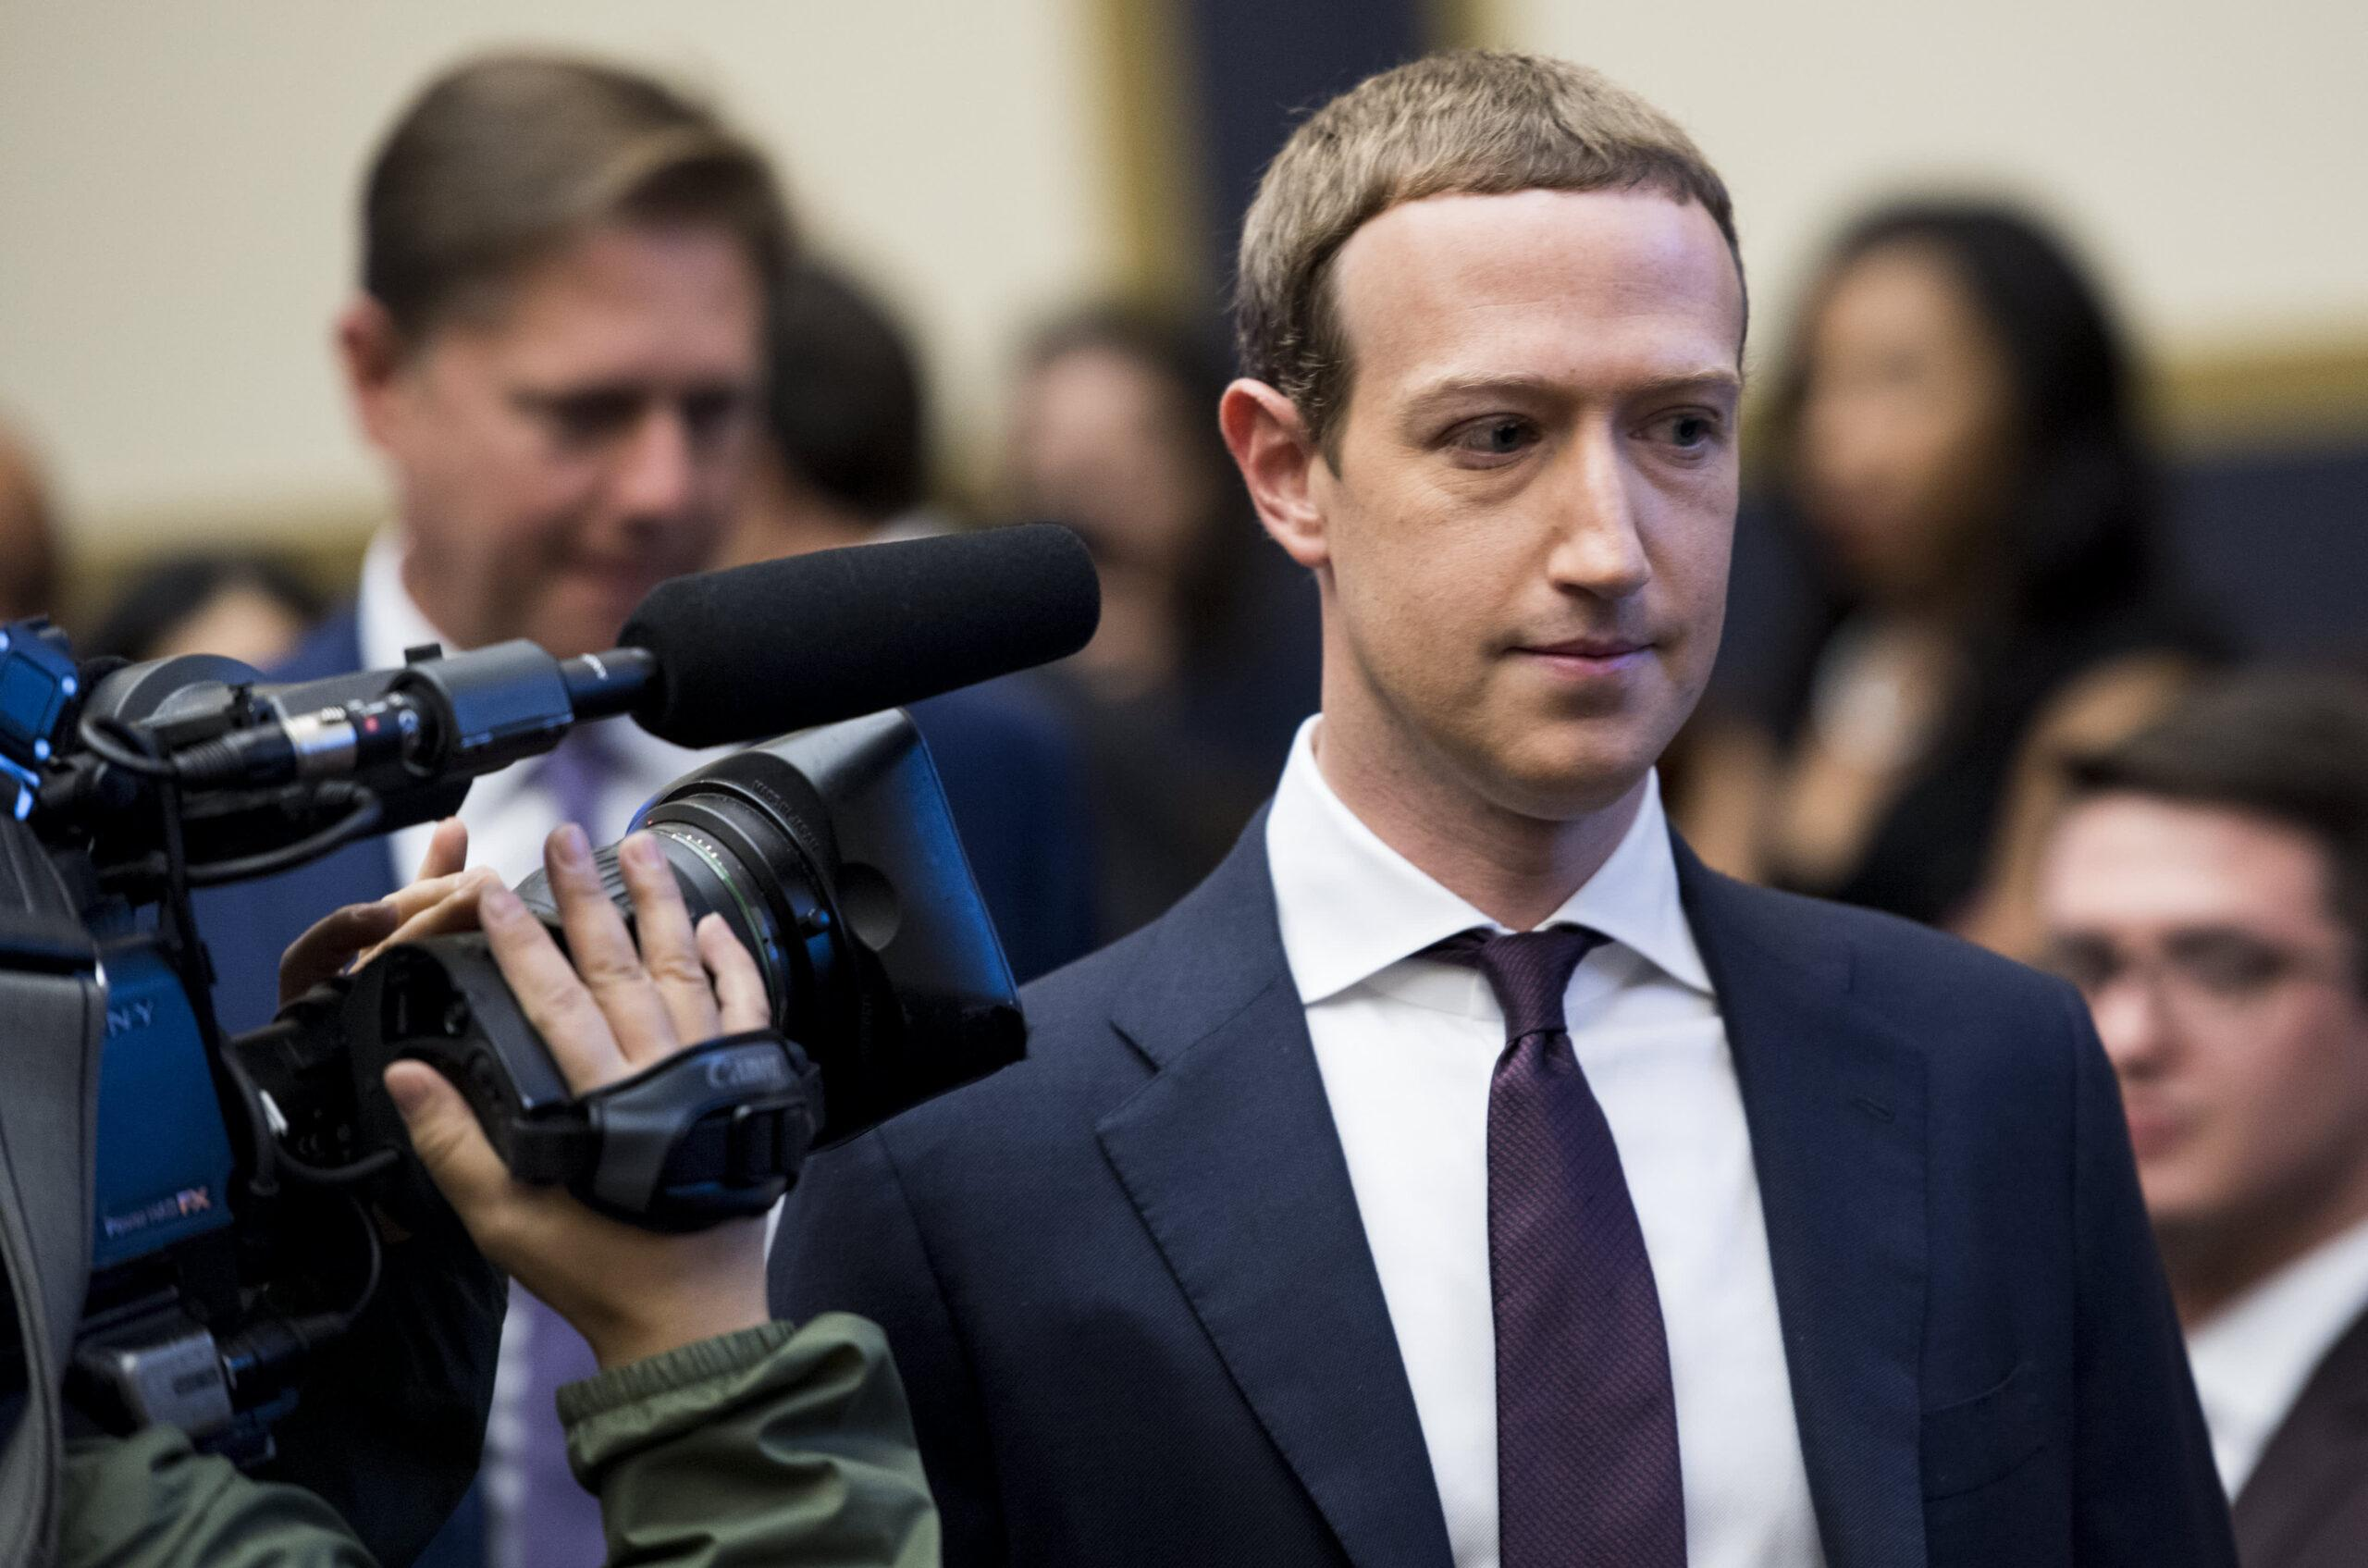 Google and Facebook to be scrutinized by new U.K. antitrust unit from next year